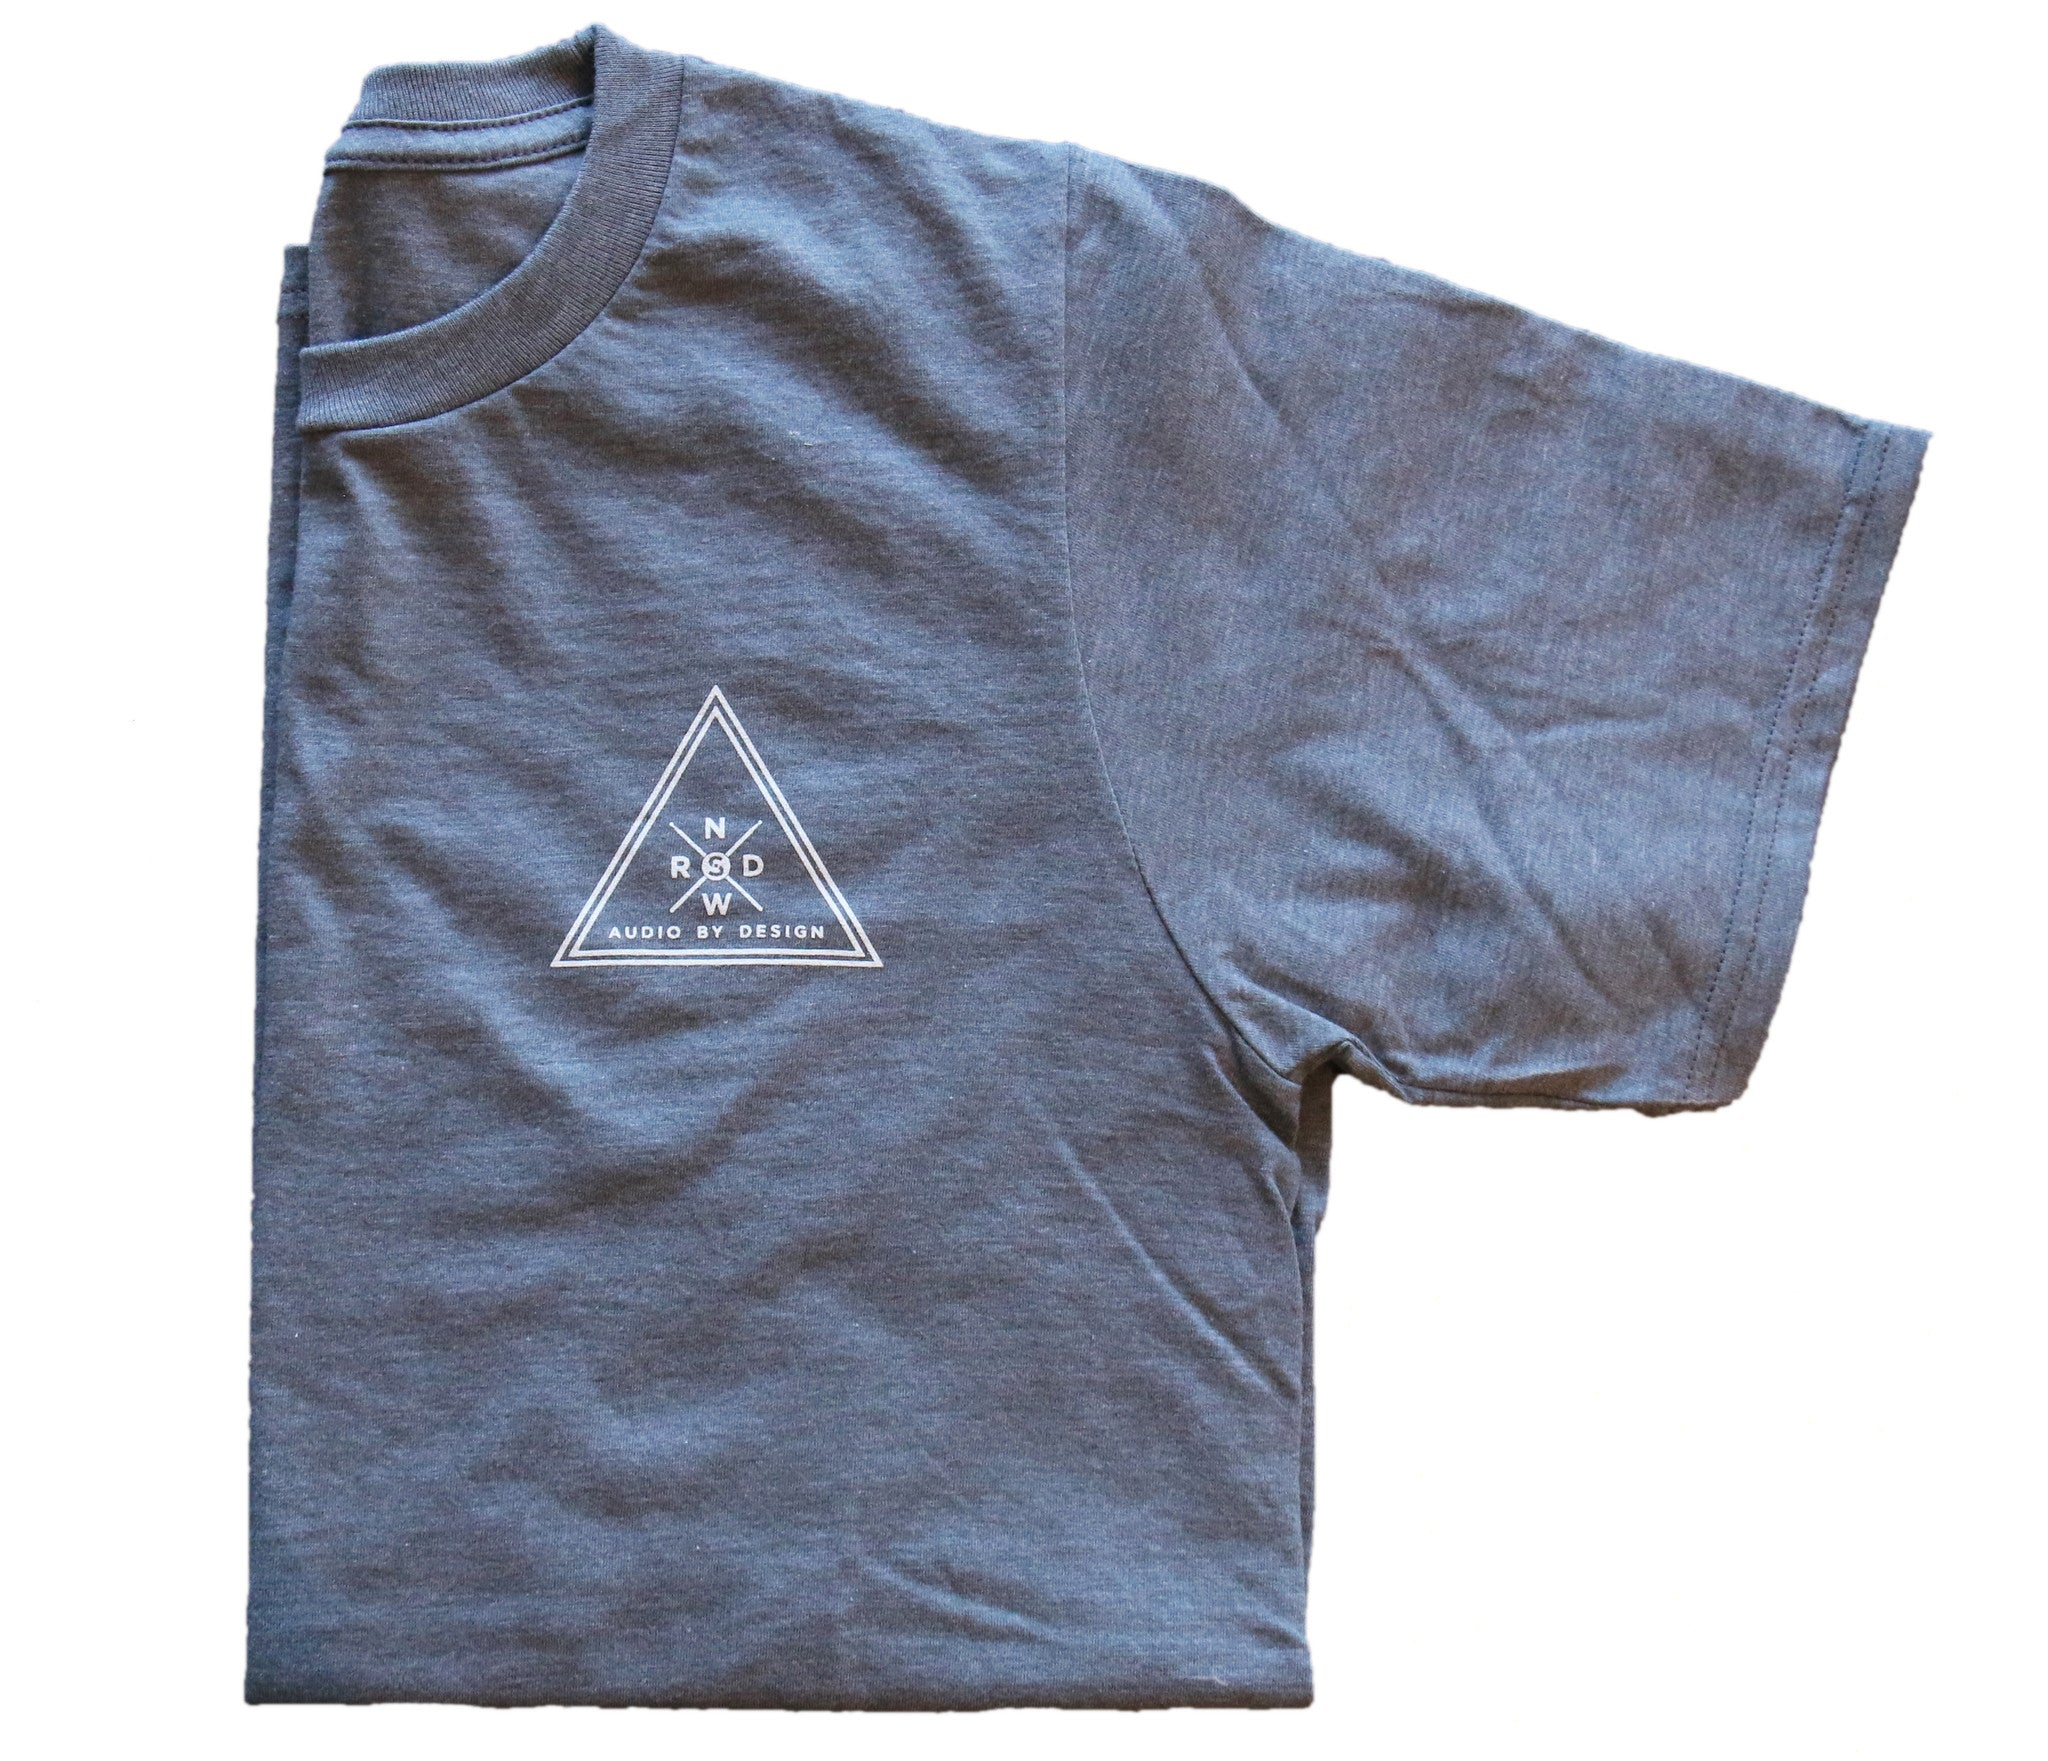 The heather grey tee